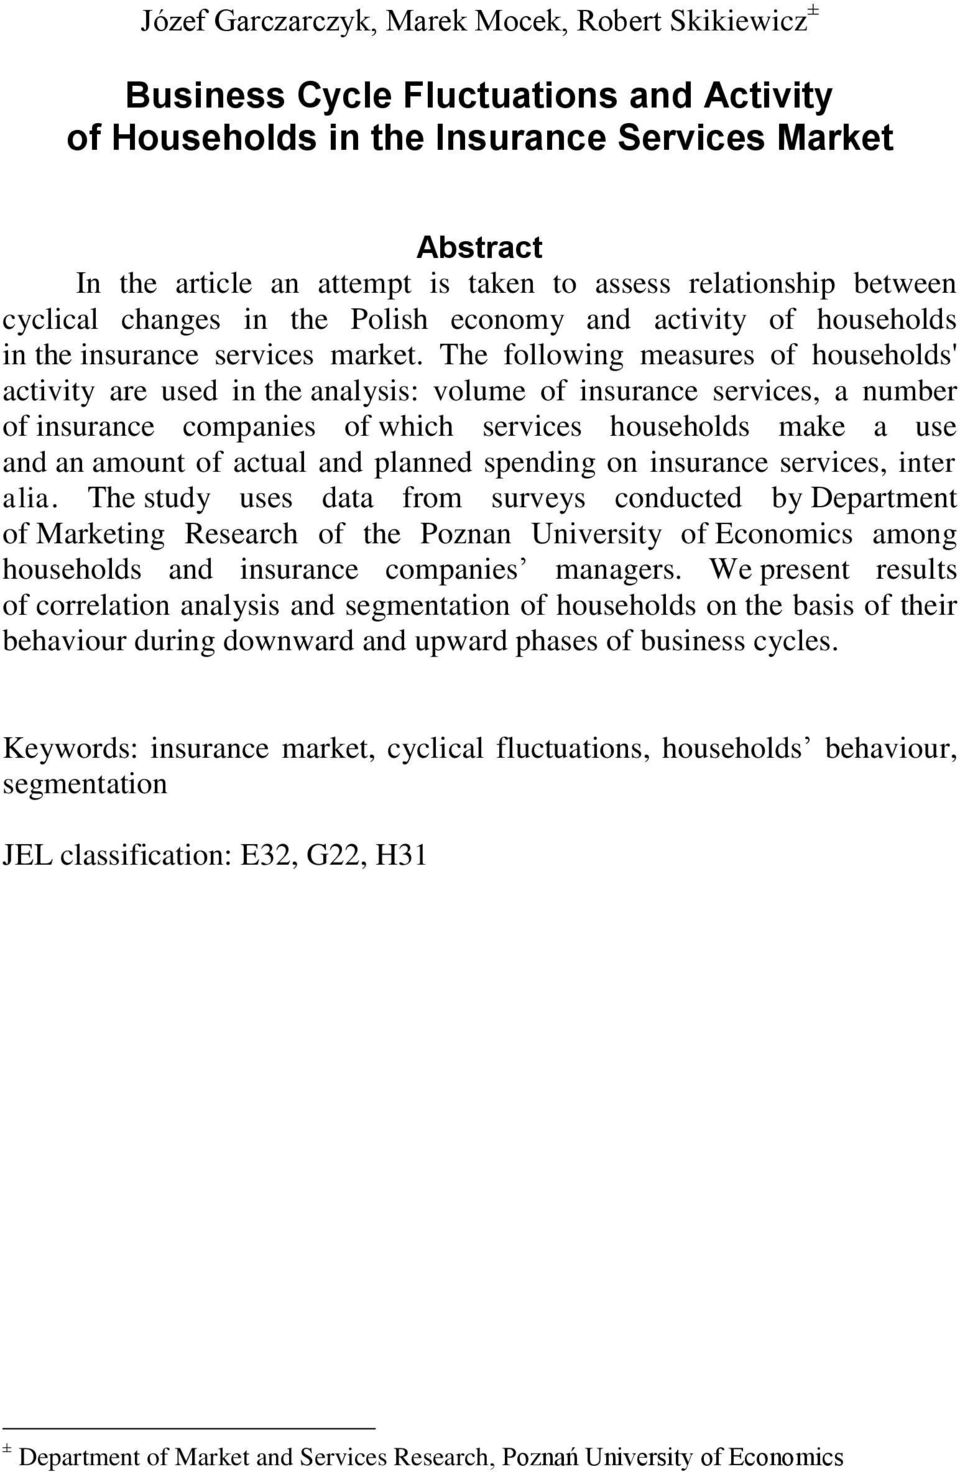 The following measures of households' activity are used in the analysis: volume of insurance services, a number of insurance companies of which services households make a use and an amount of actual